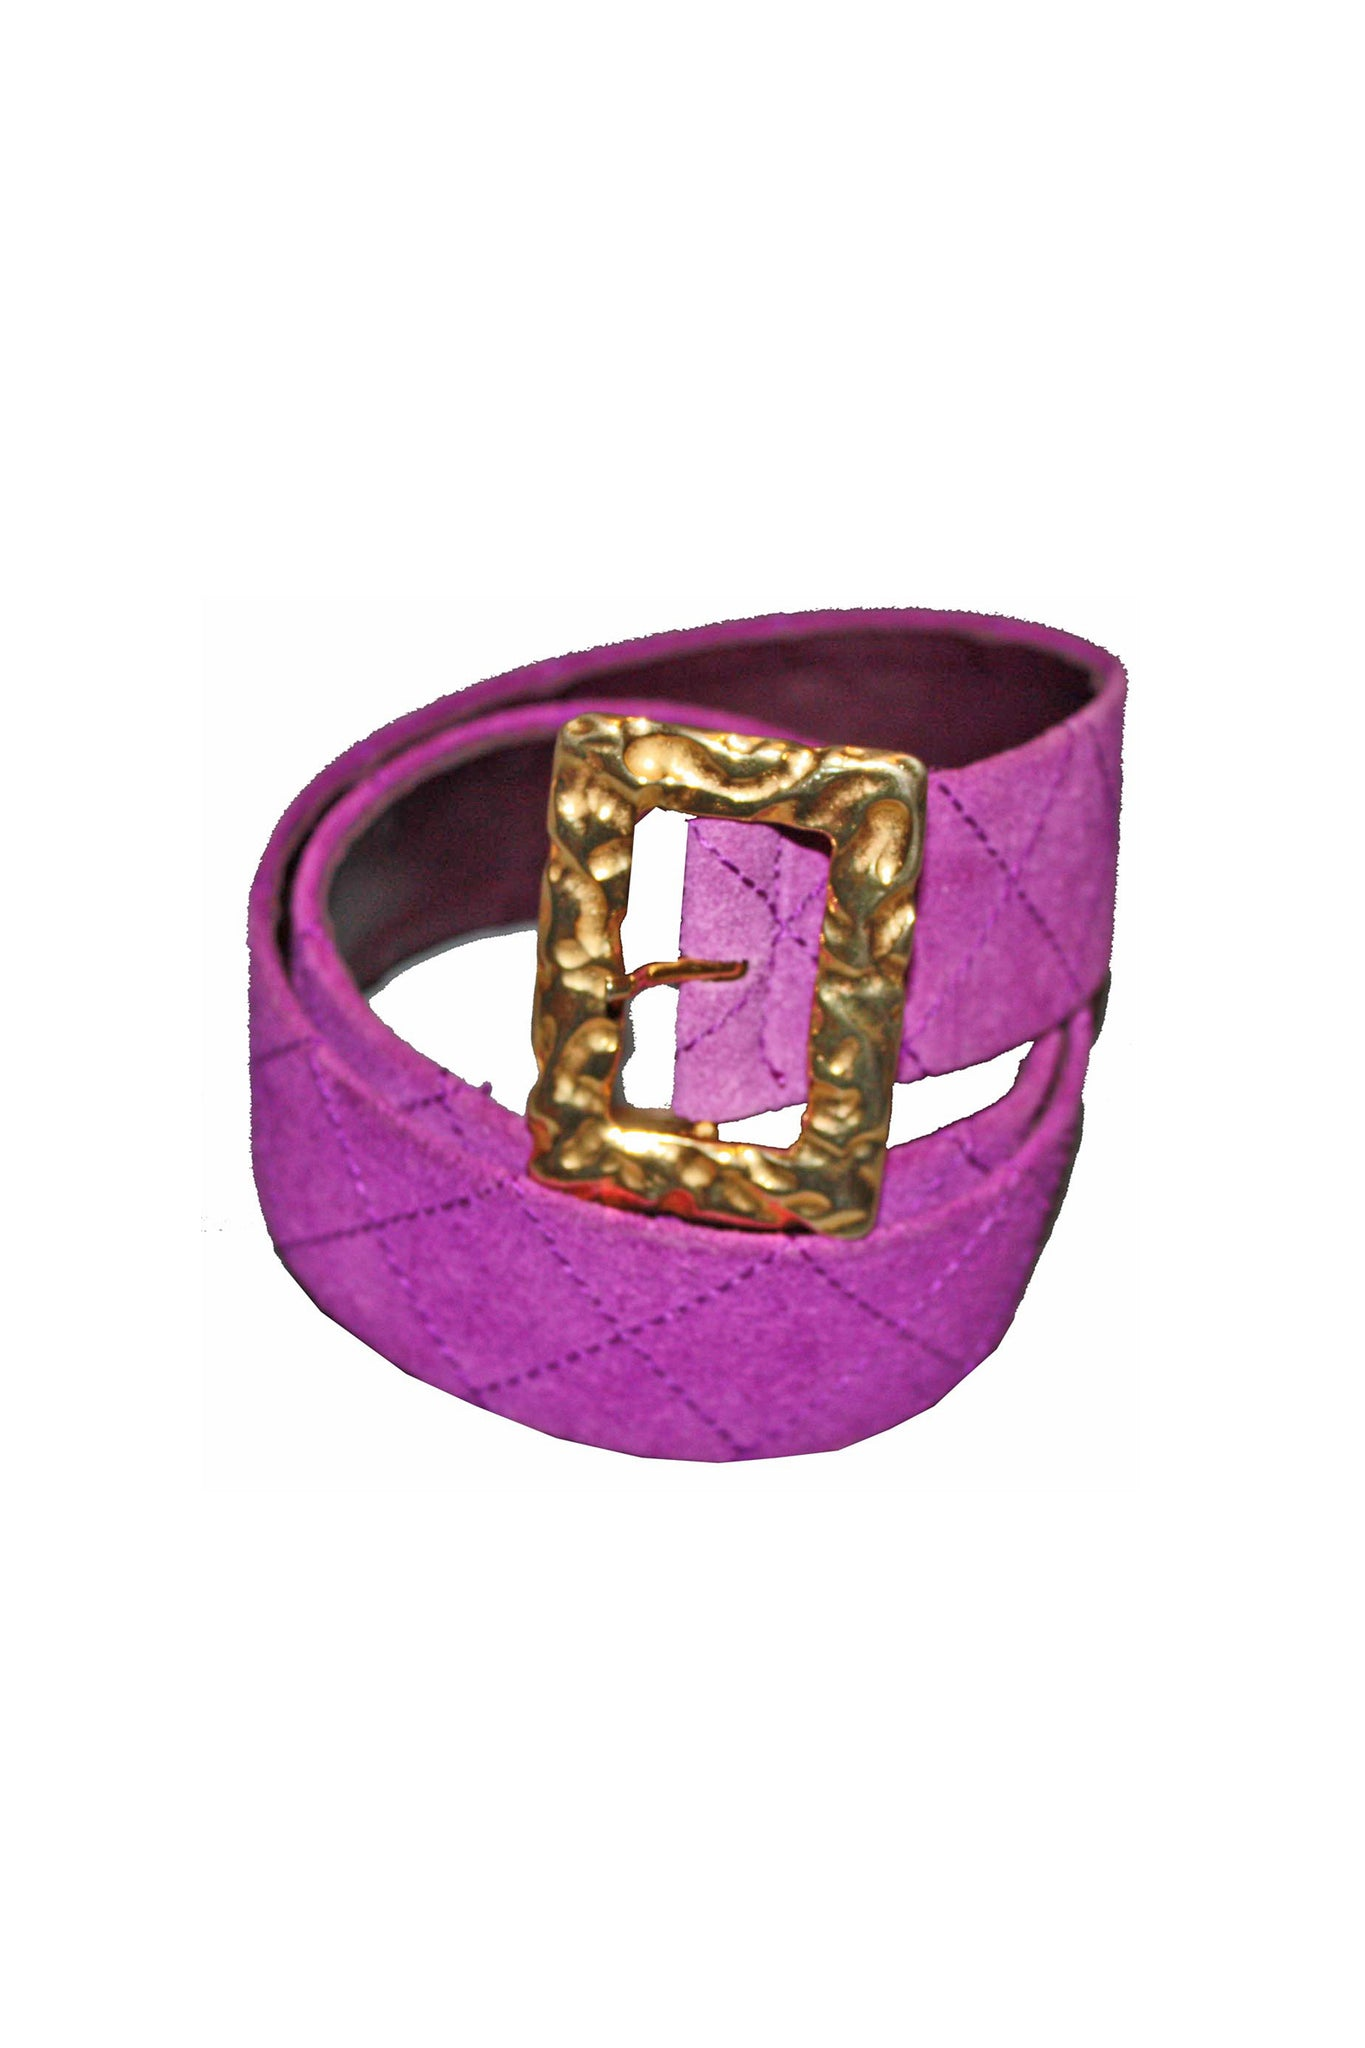 Vintage 60's purple suede belt with gold buckle - SoLovesVintage